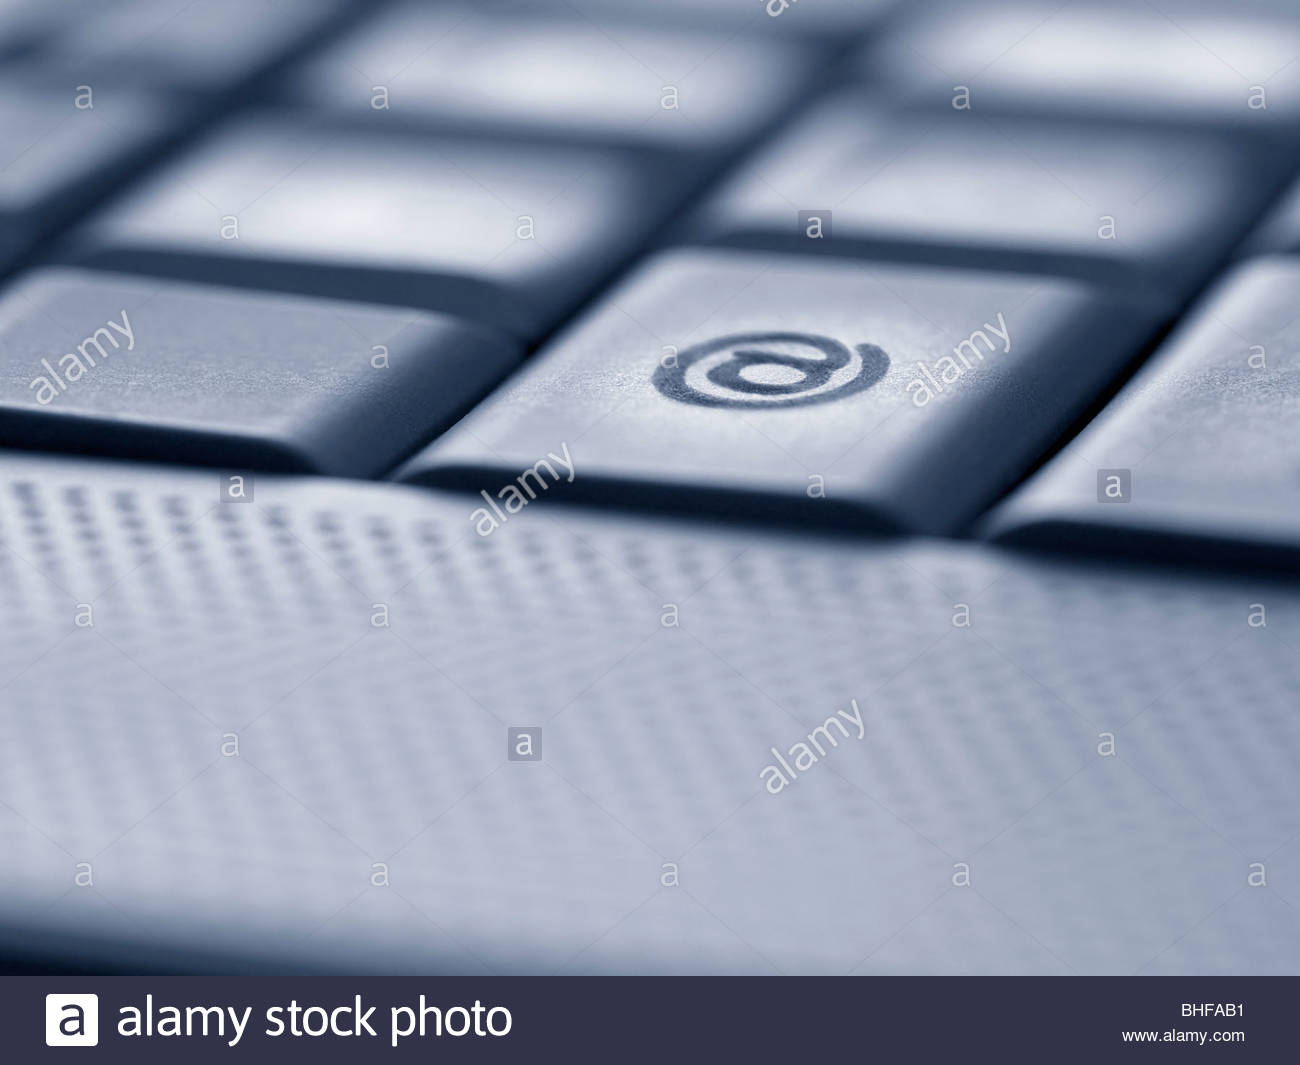 Close Up Of The At Symbol Key On Computer Keyboard Stock Photo